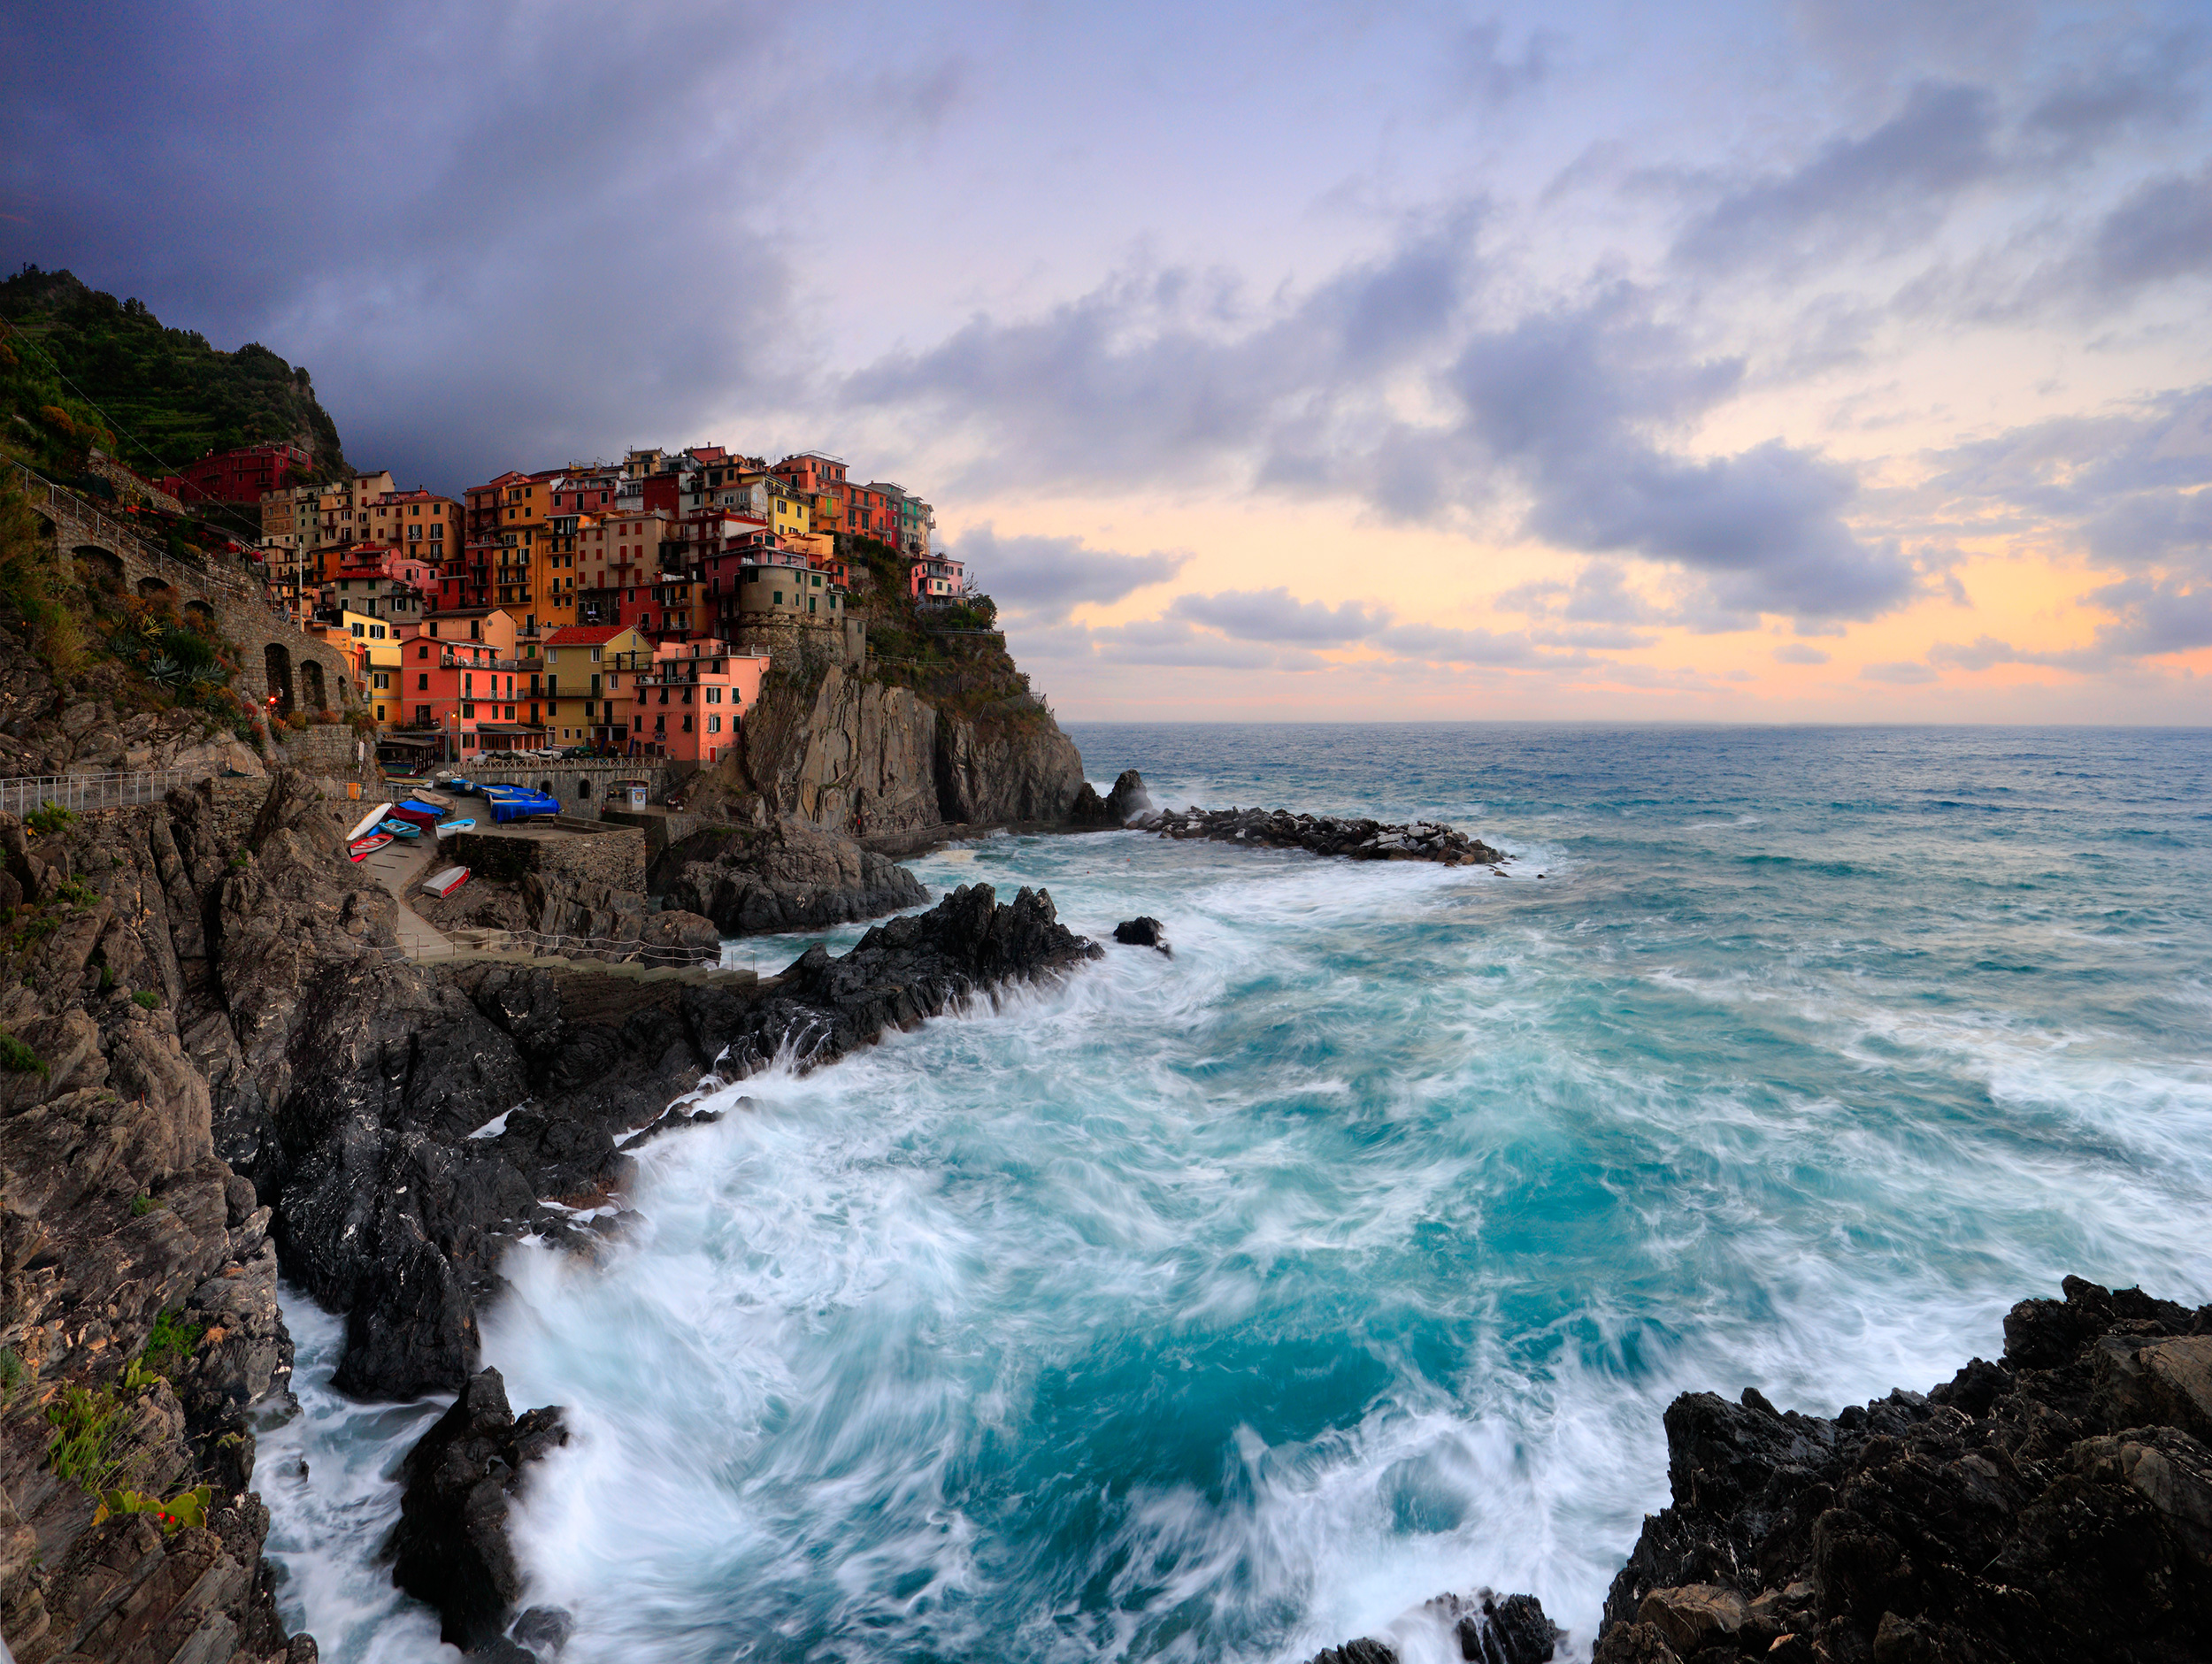 Crashing waves in Manarola - Cinque Terre, Italy